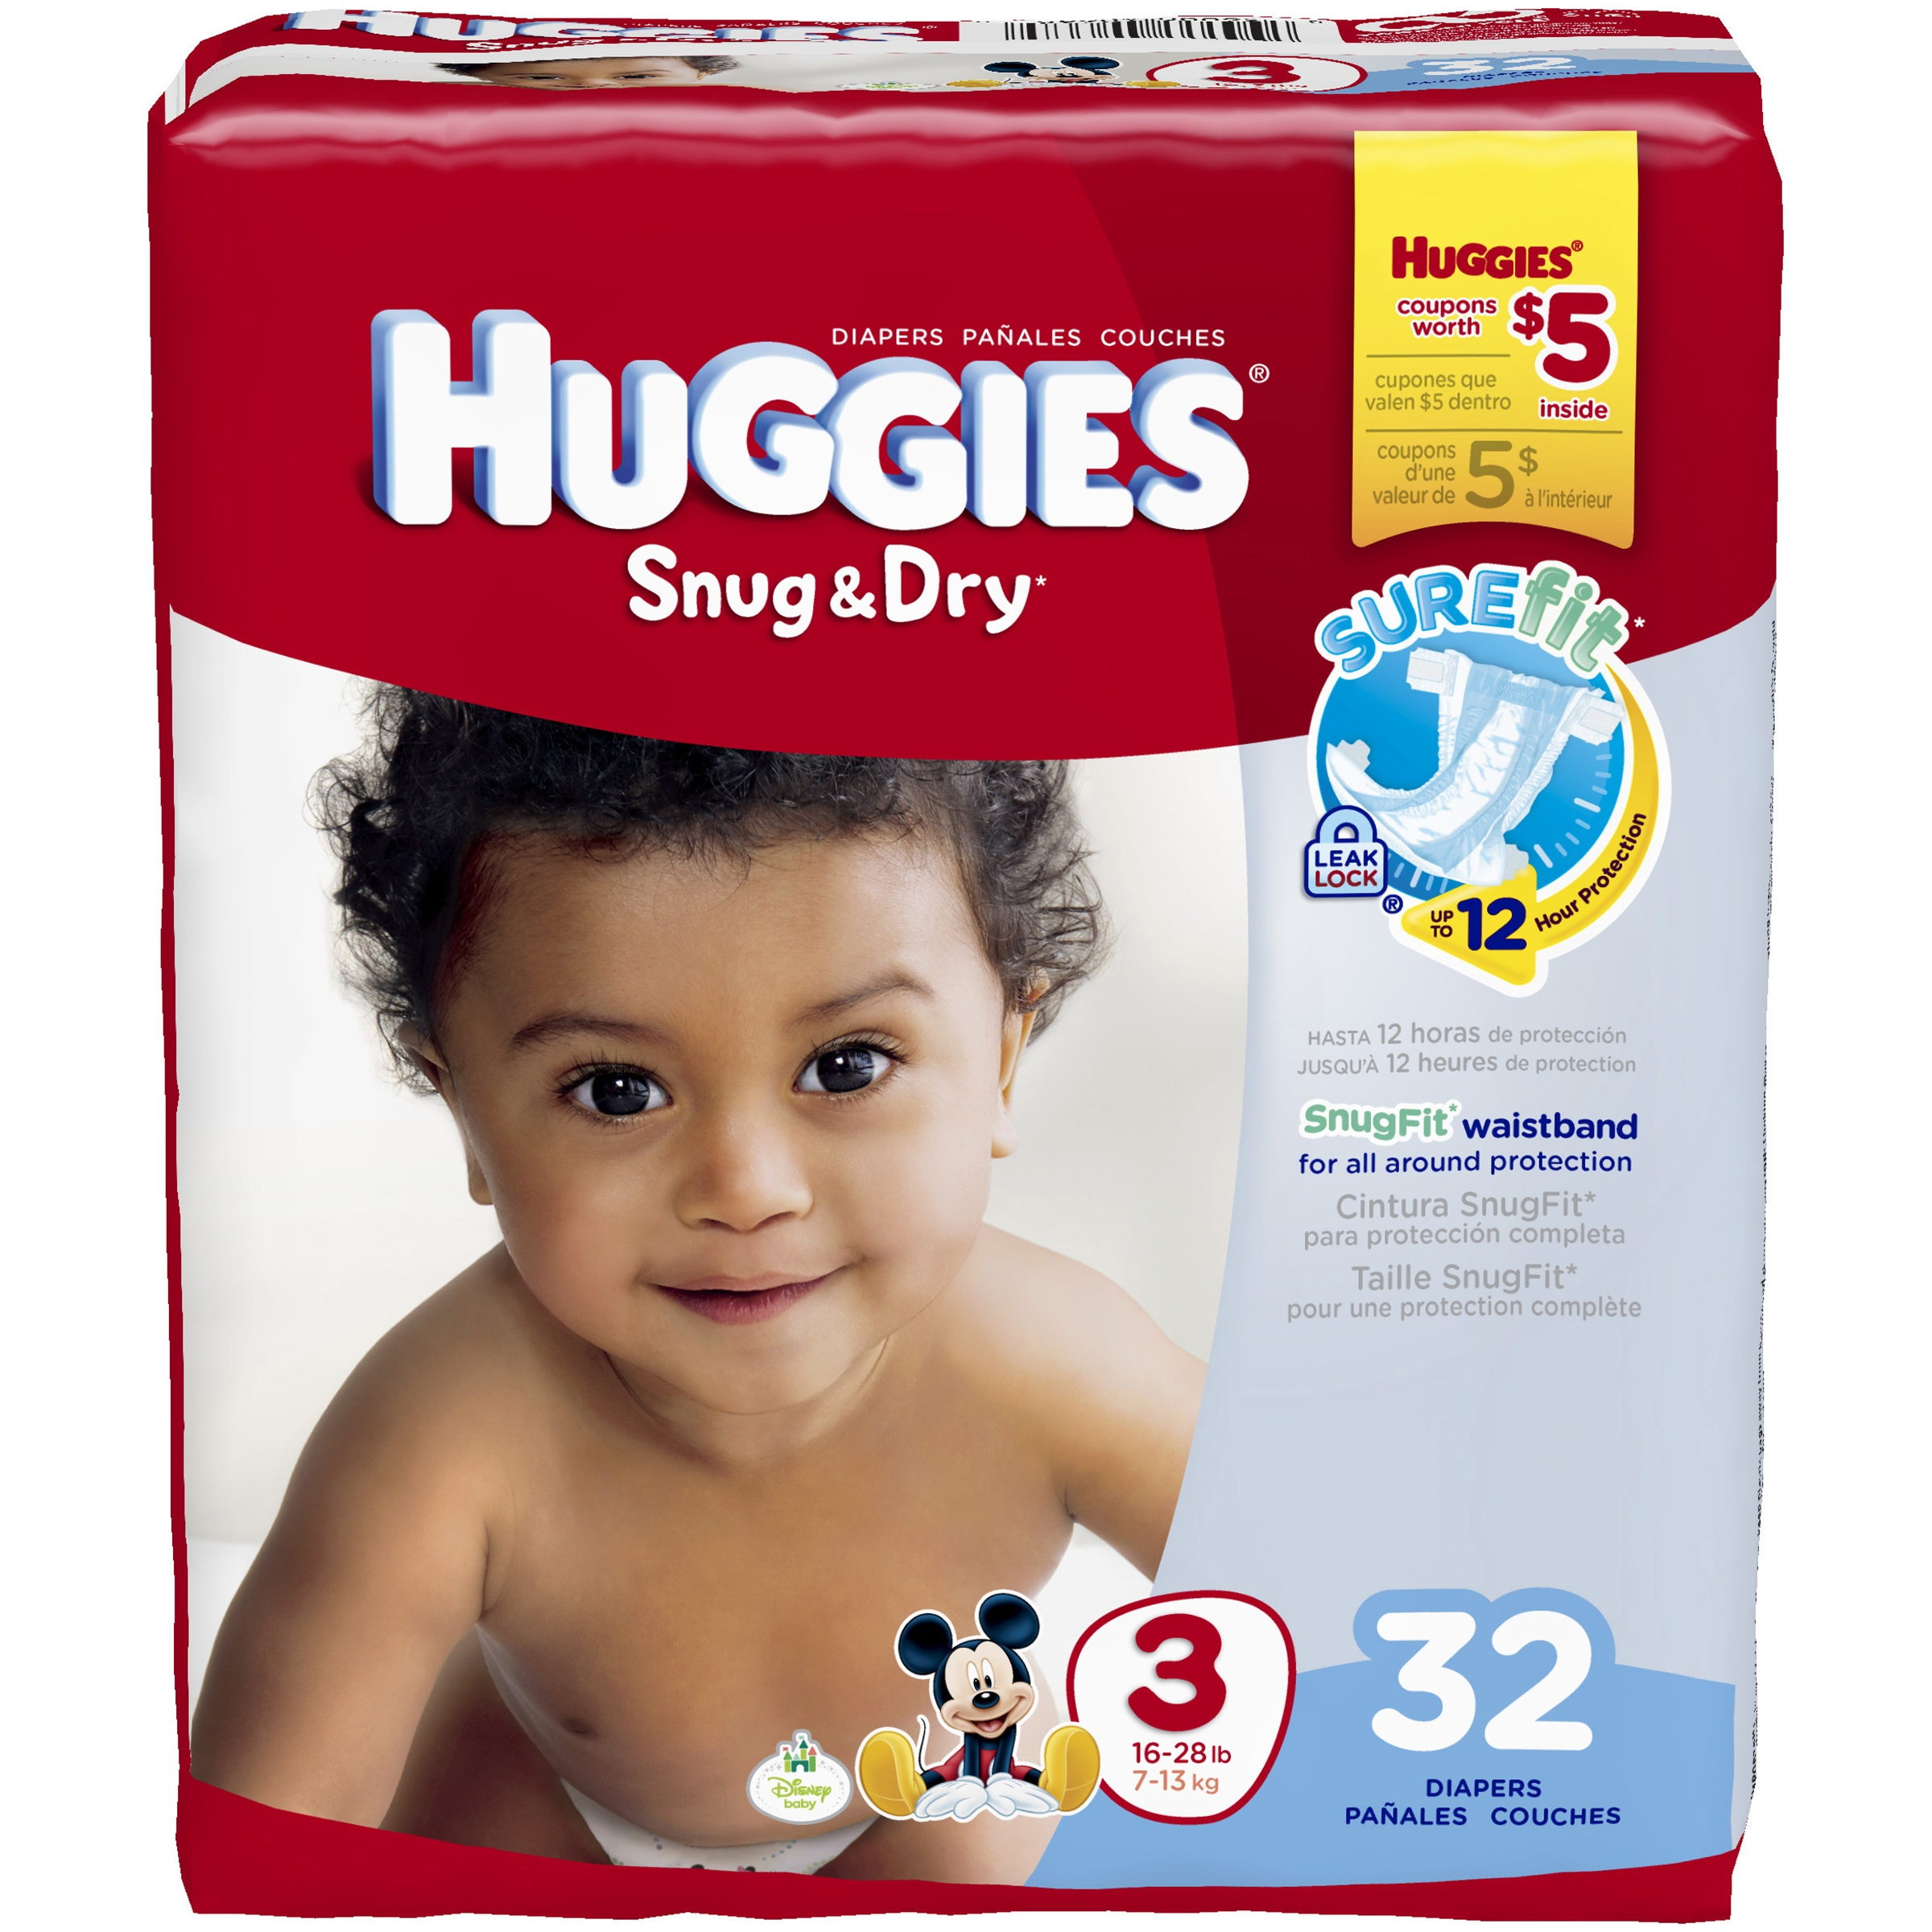 HUGGIES Snug & Dry Diapers, (Choose Your Size)